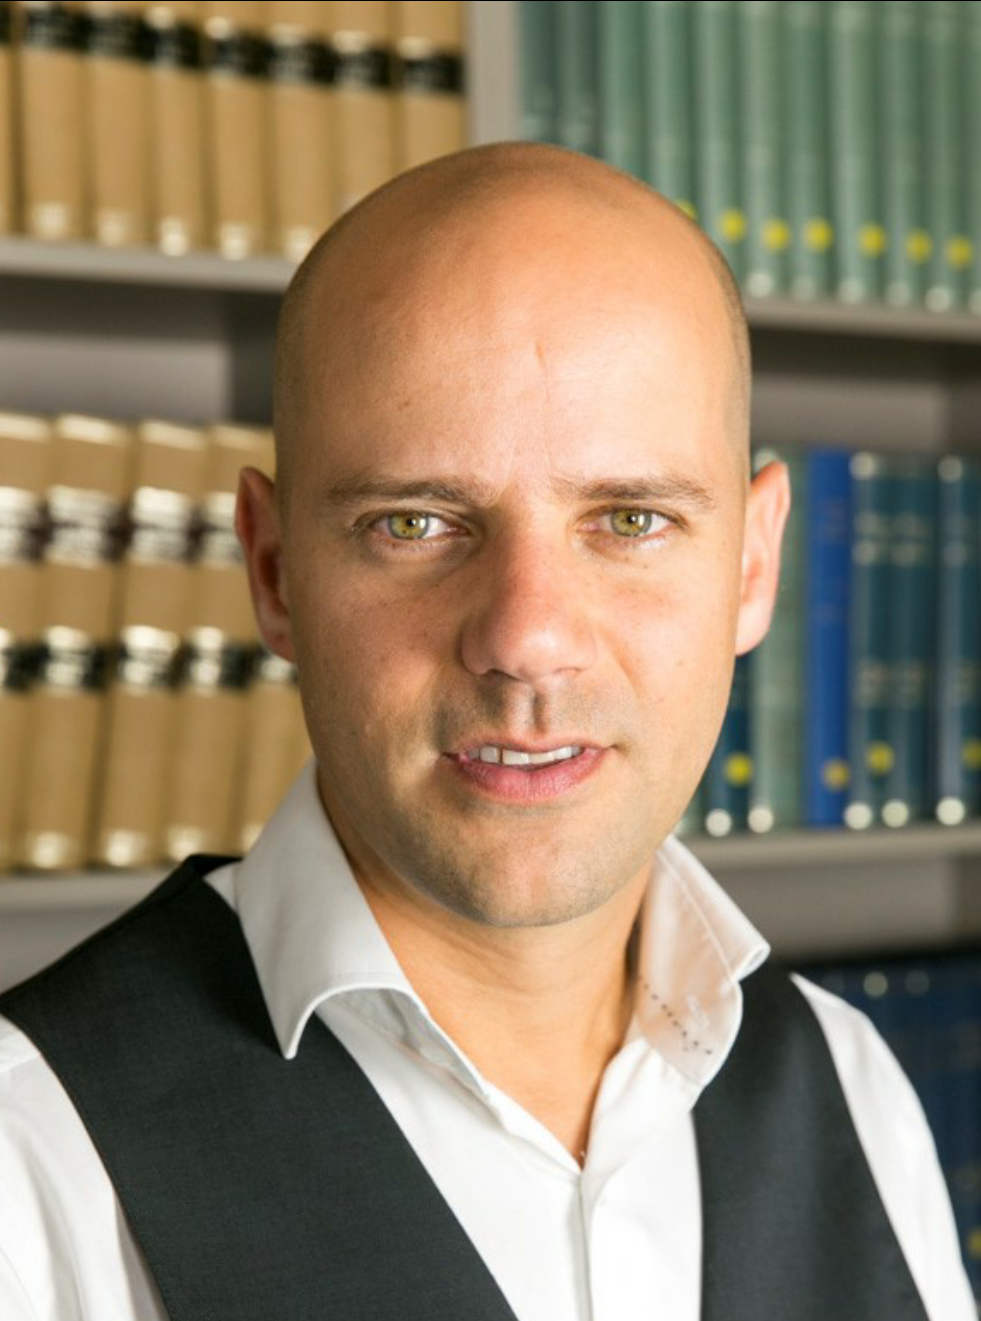 Photo of Doron Goldbarsht